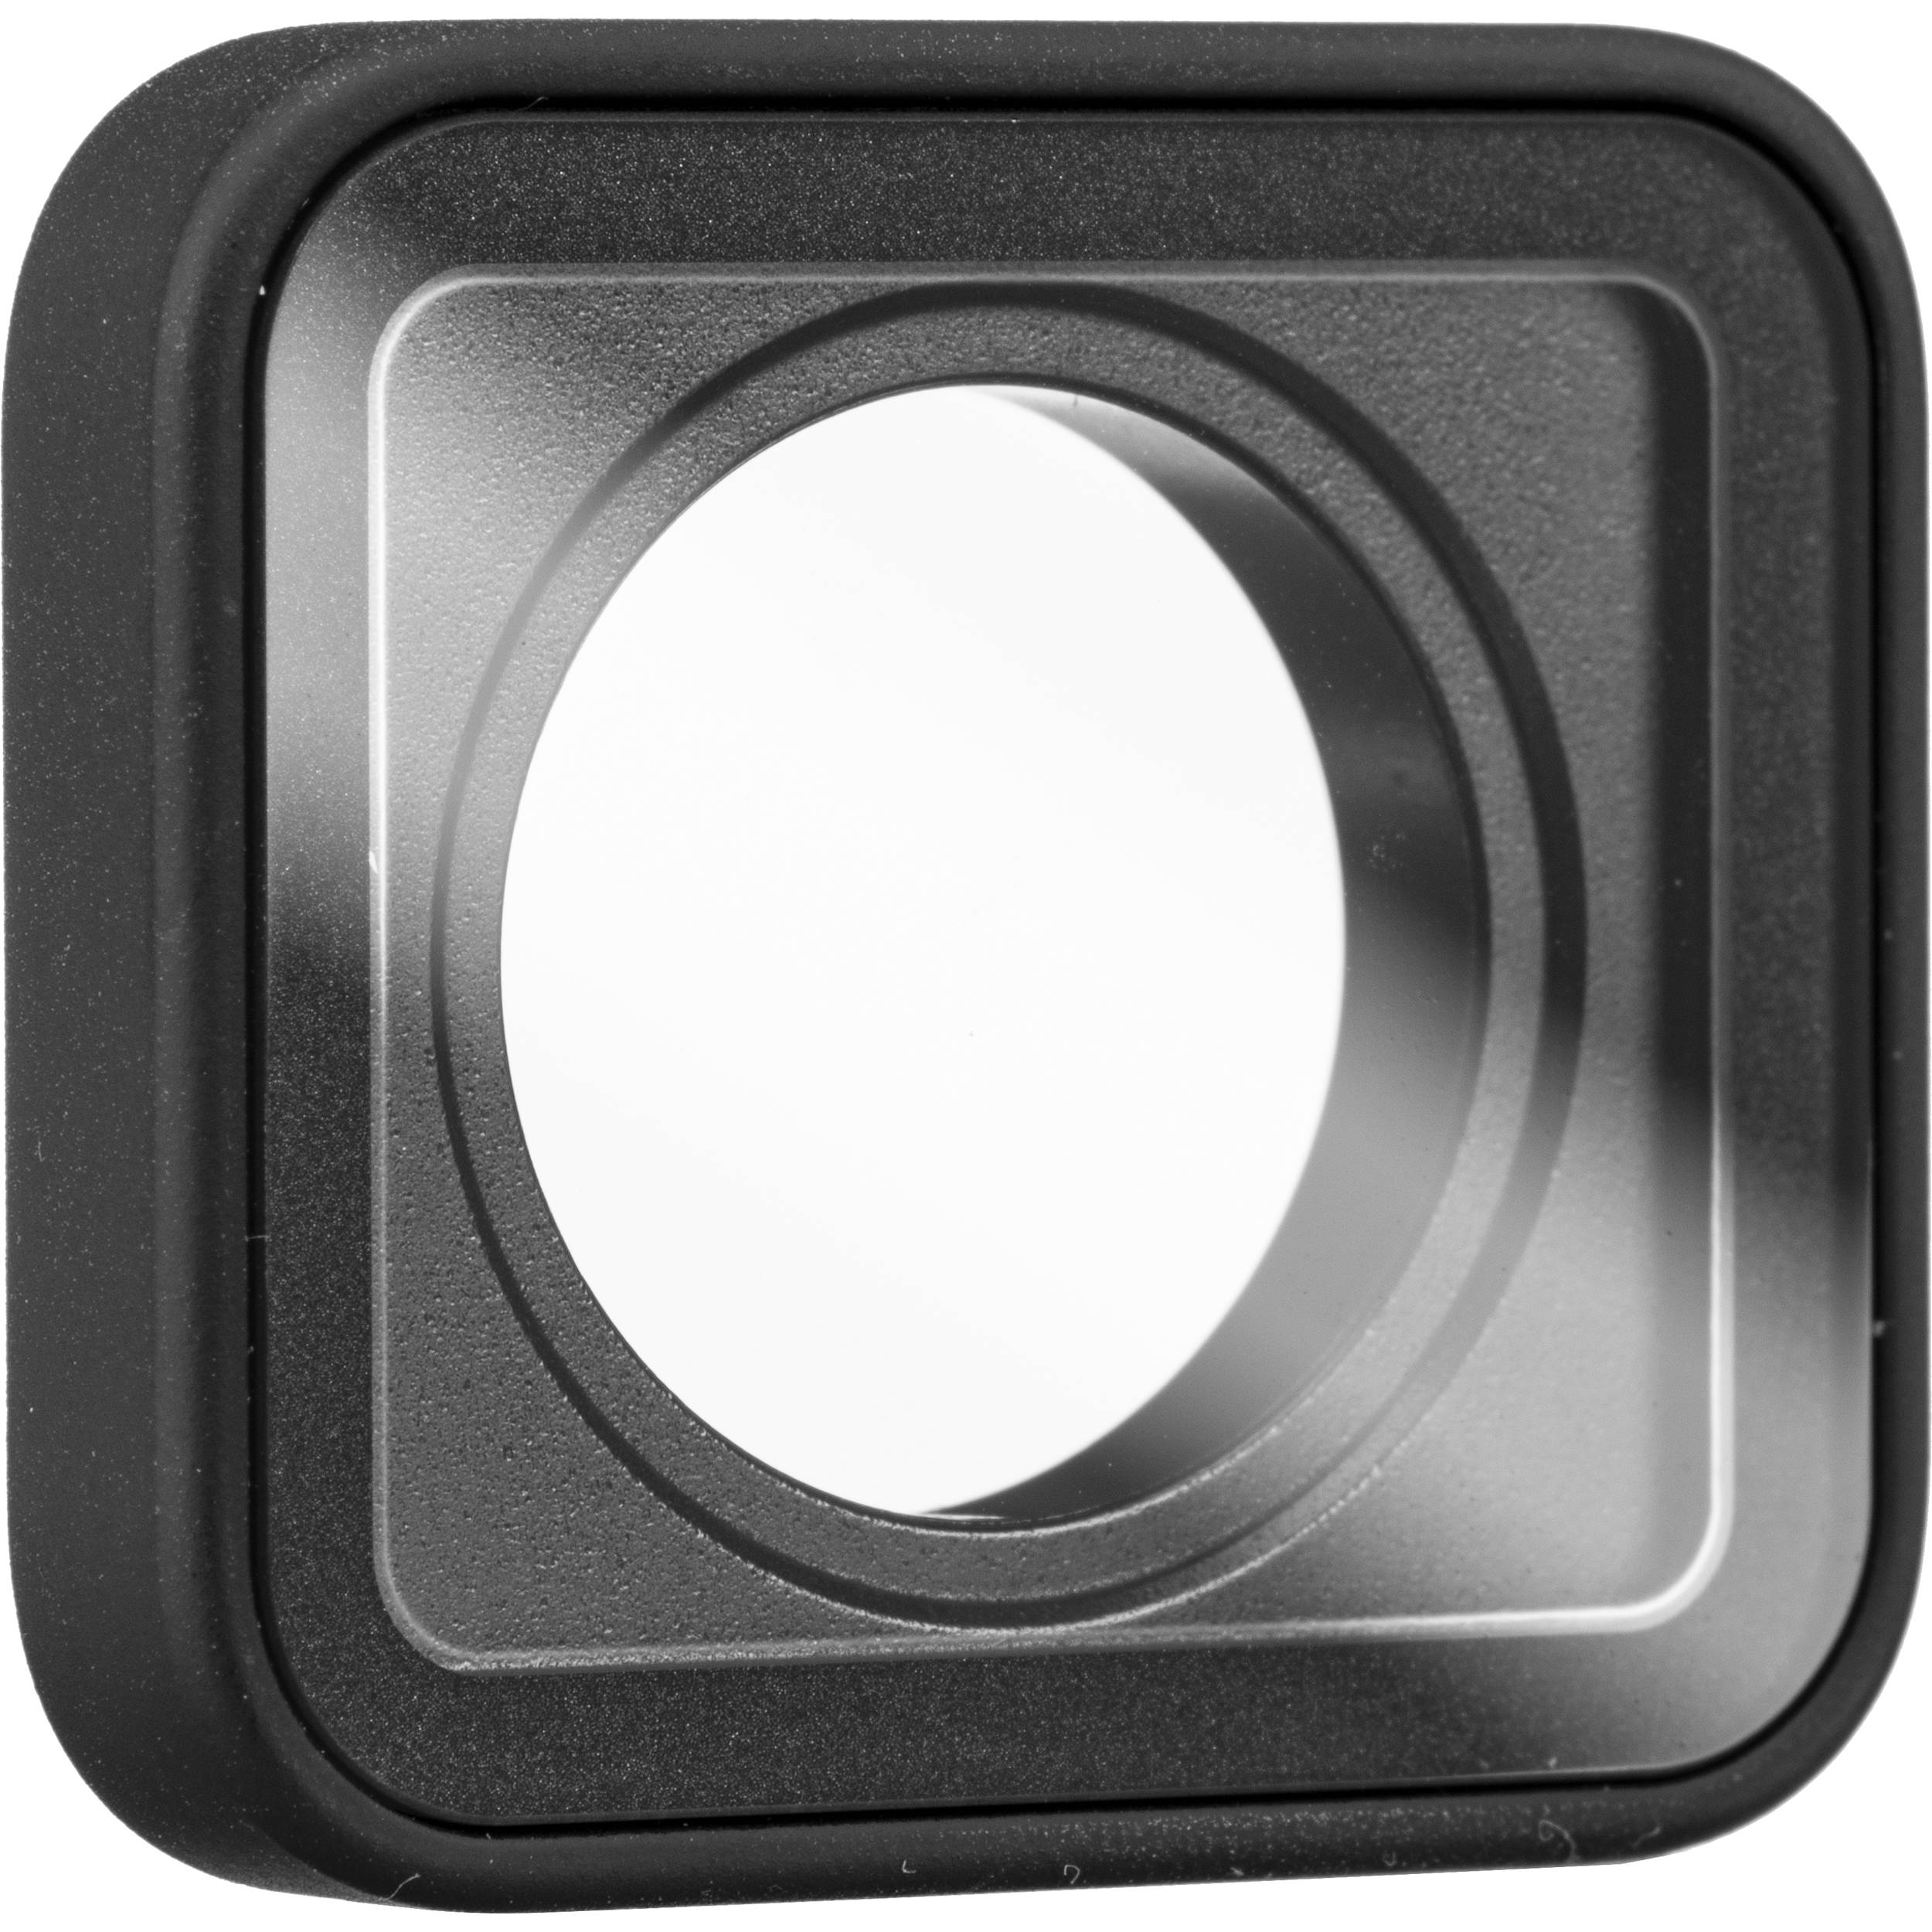 0fa7c1937 GoPro Protective Lens Replacement for HERO7 Black AACOV-003 B&H